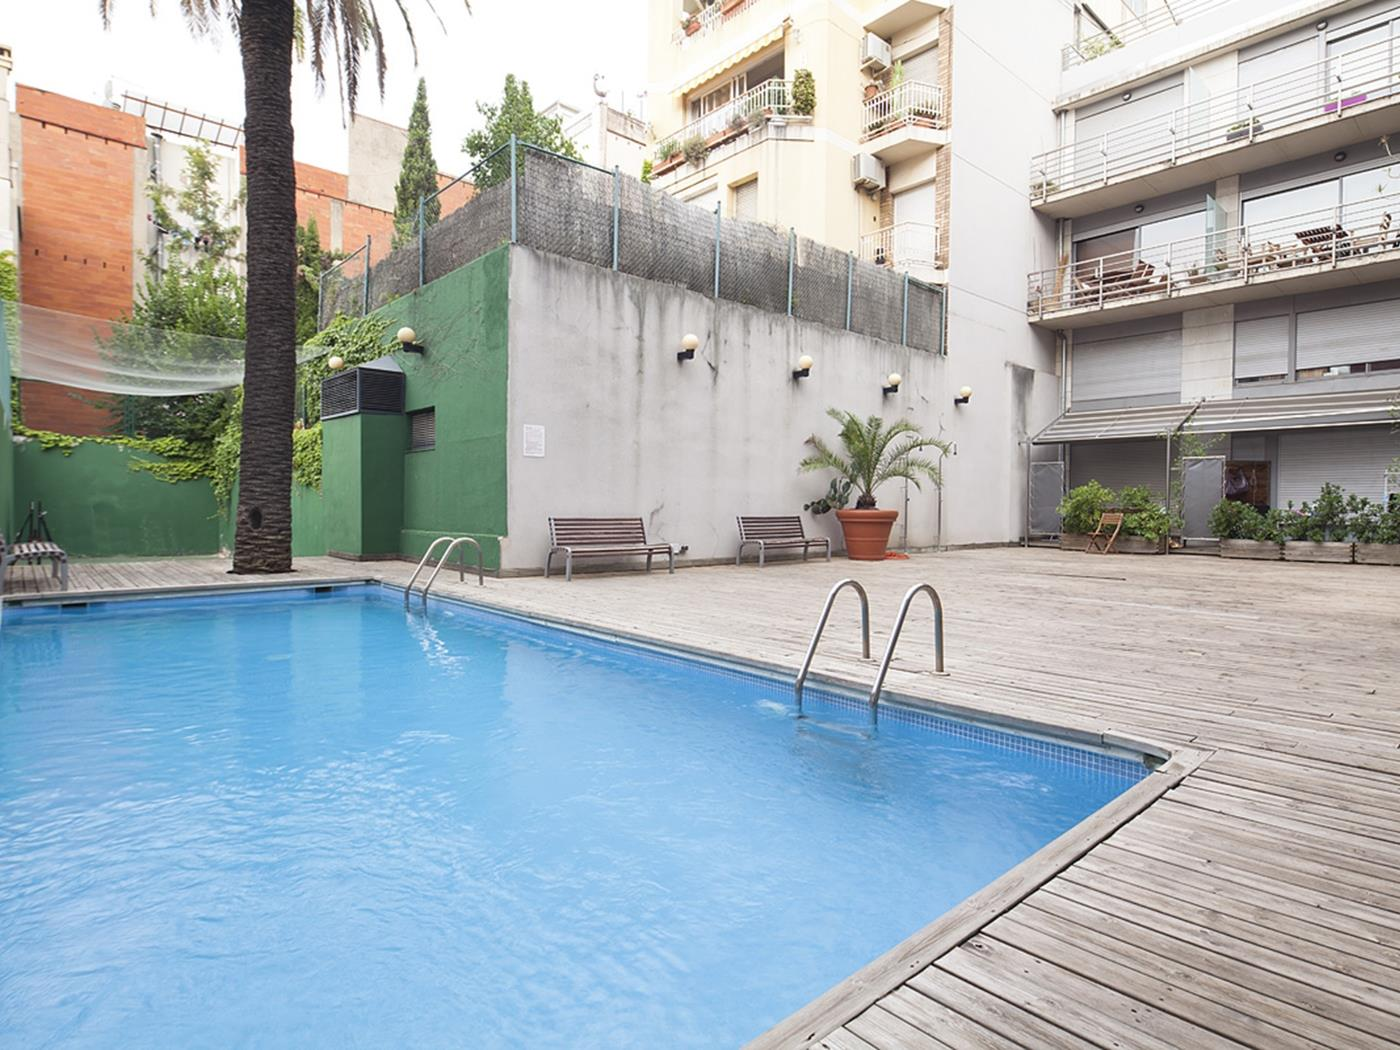 Putxet apartments with pool 35 I - My Space Barcelona Aпартаменты